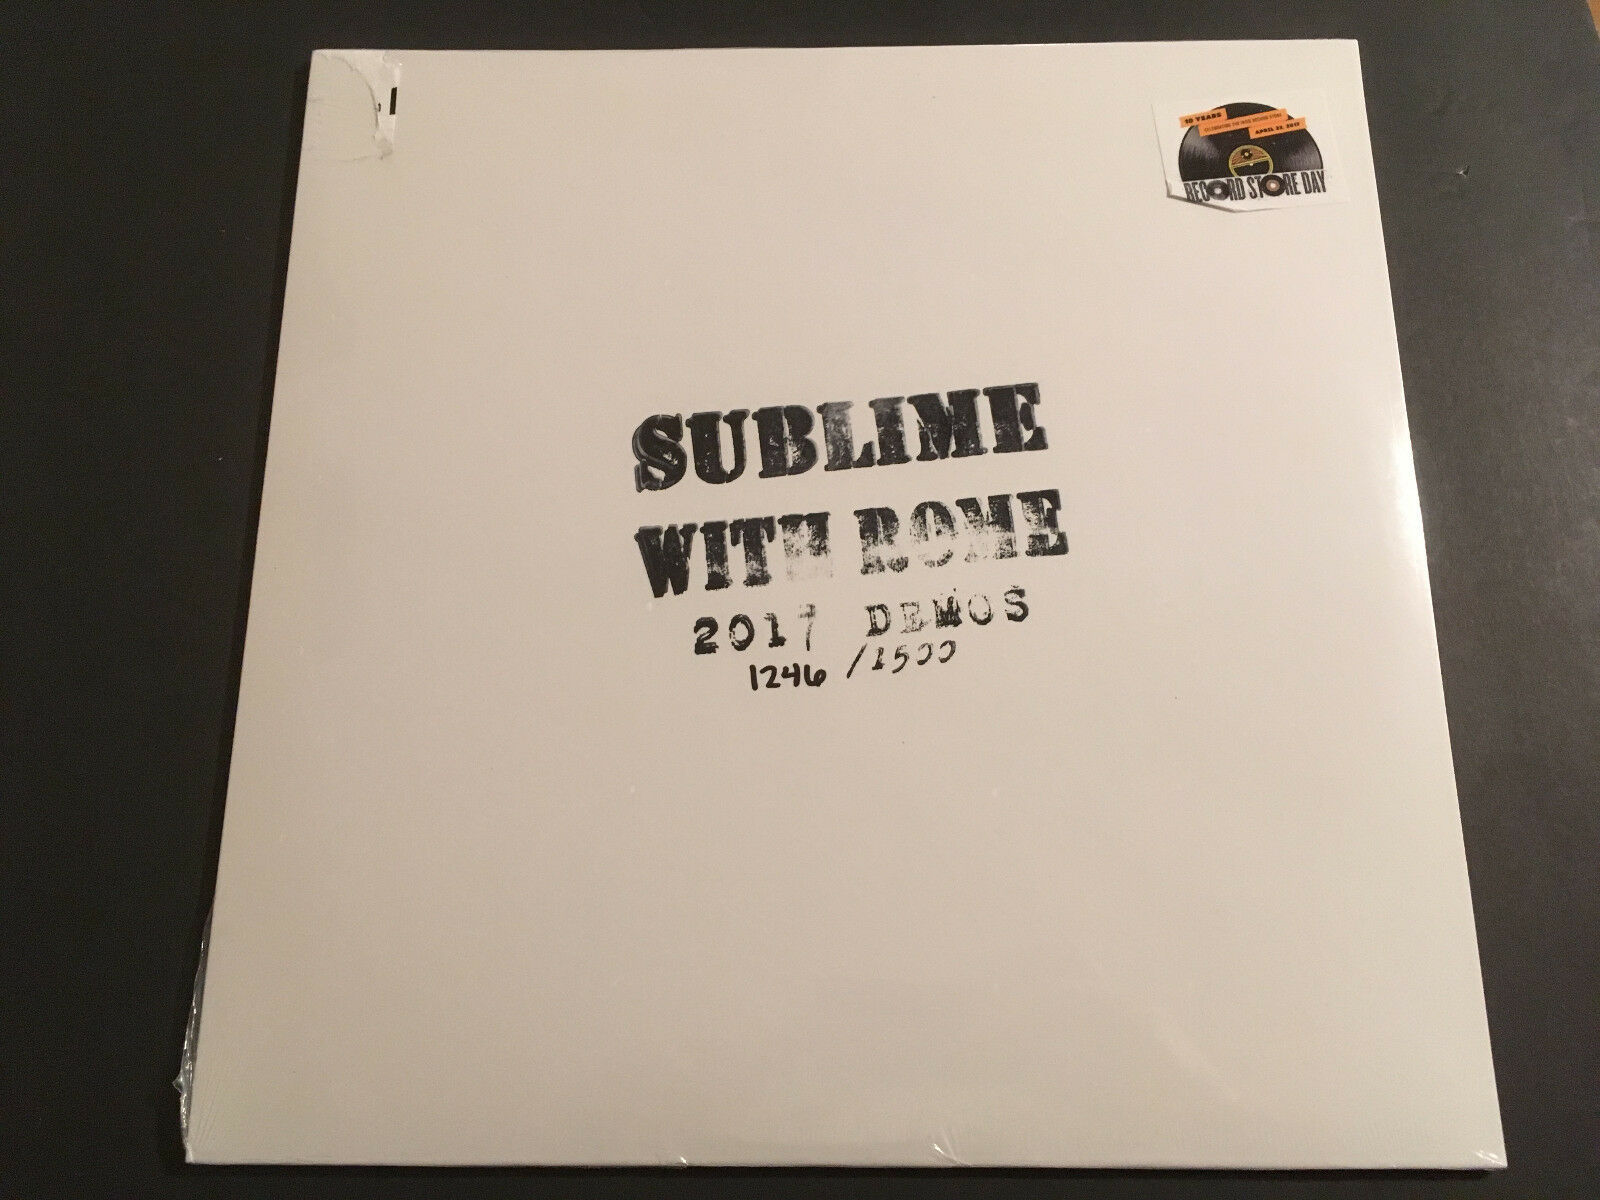 Primary image for Sublime With Rome : 2017 Demos /1500 - 2017 Record Store Day 2017 RSD